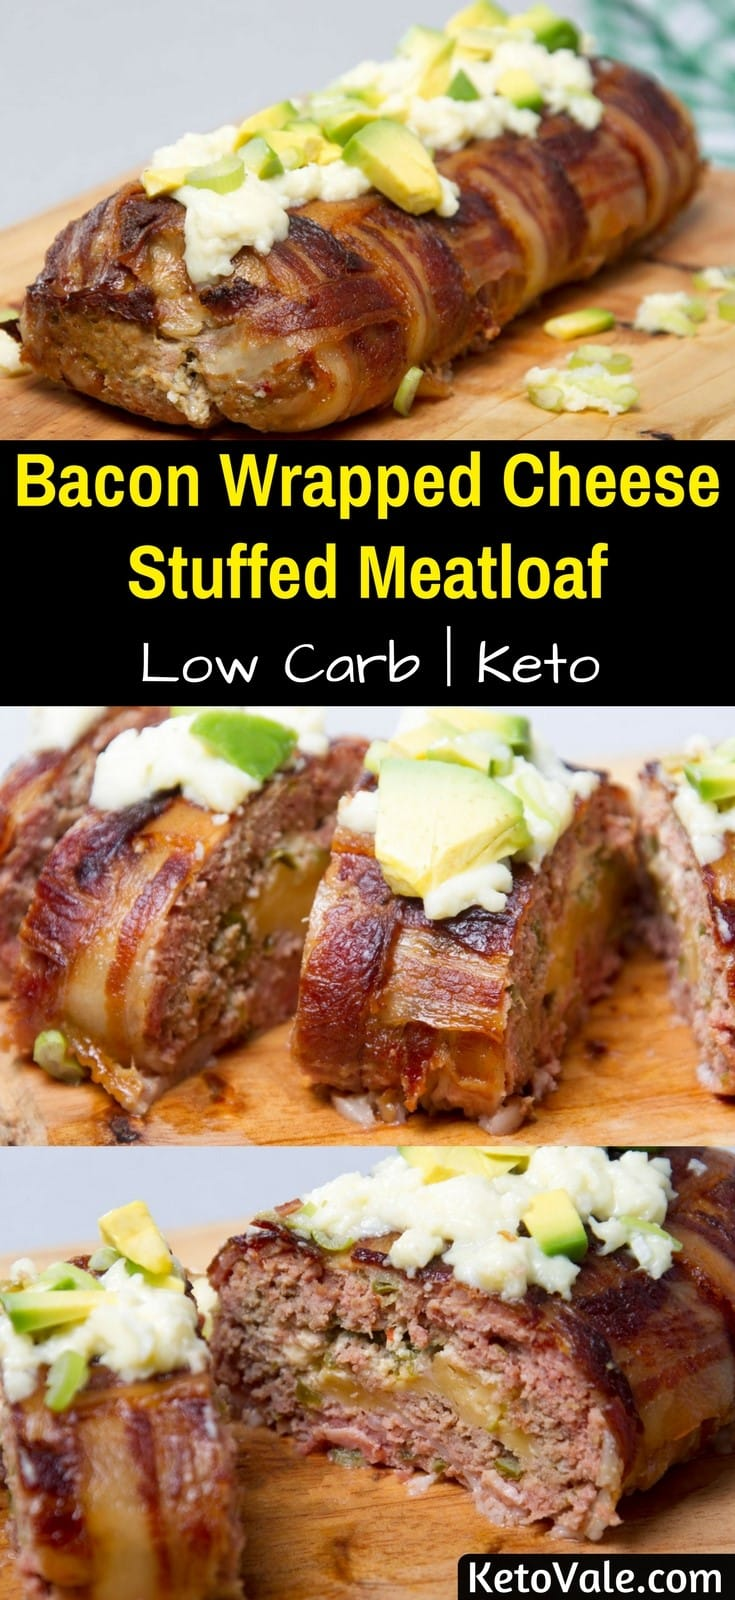 Keto Cheese Stuffed Meatloaf Wrapped with Bacon Low Carb Recipe